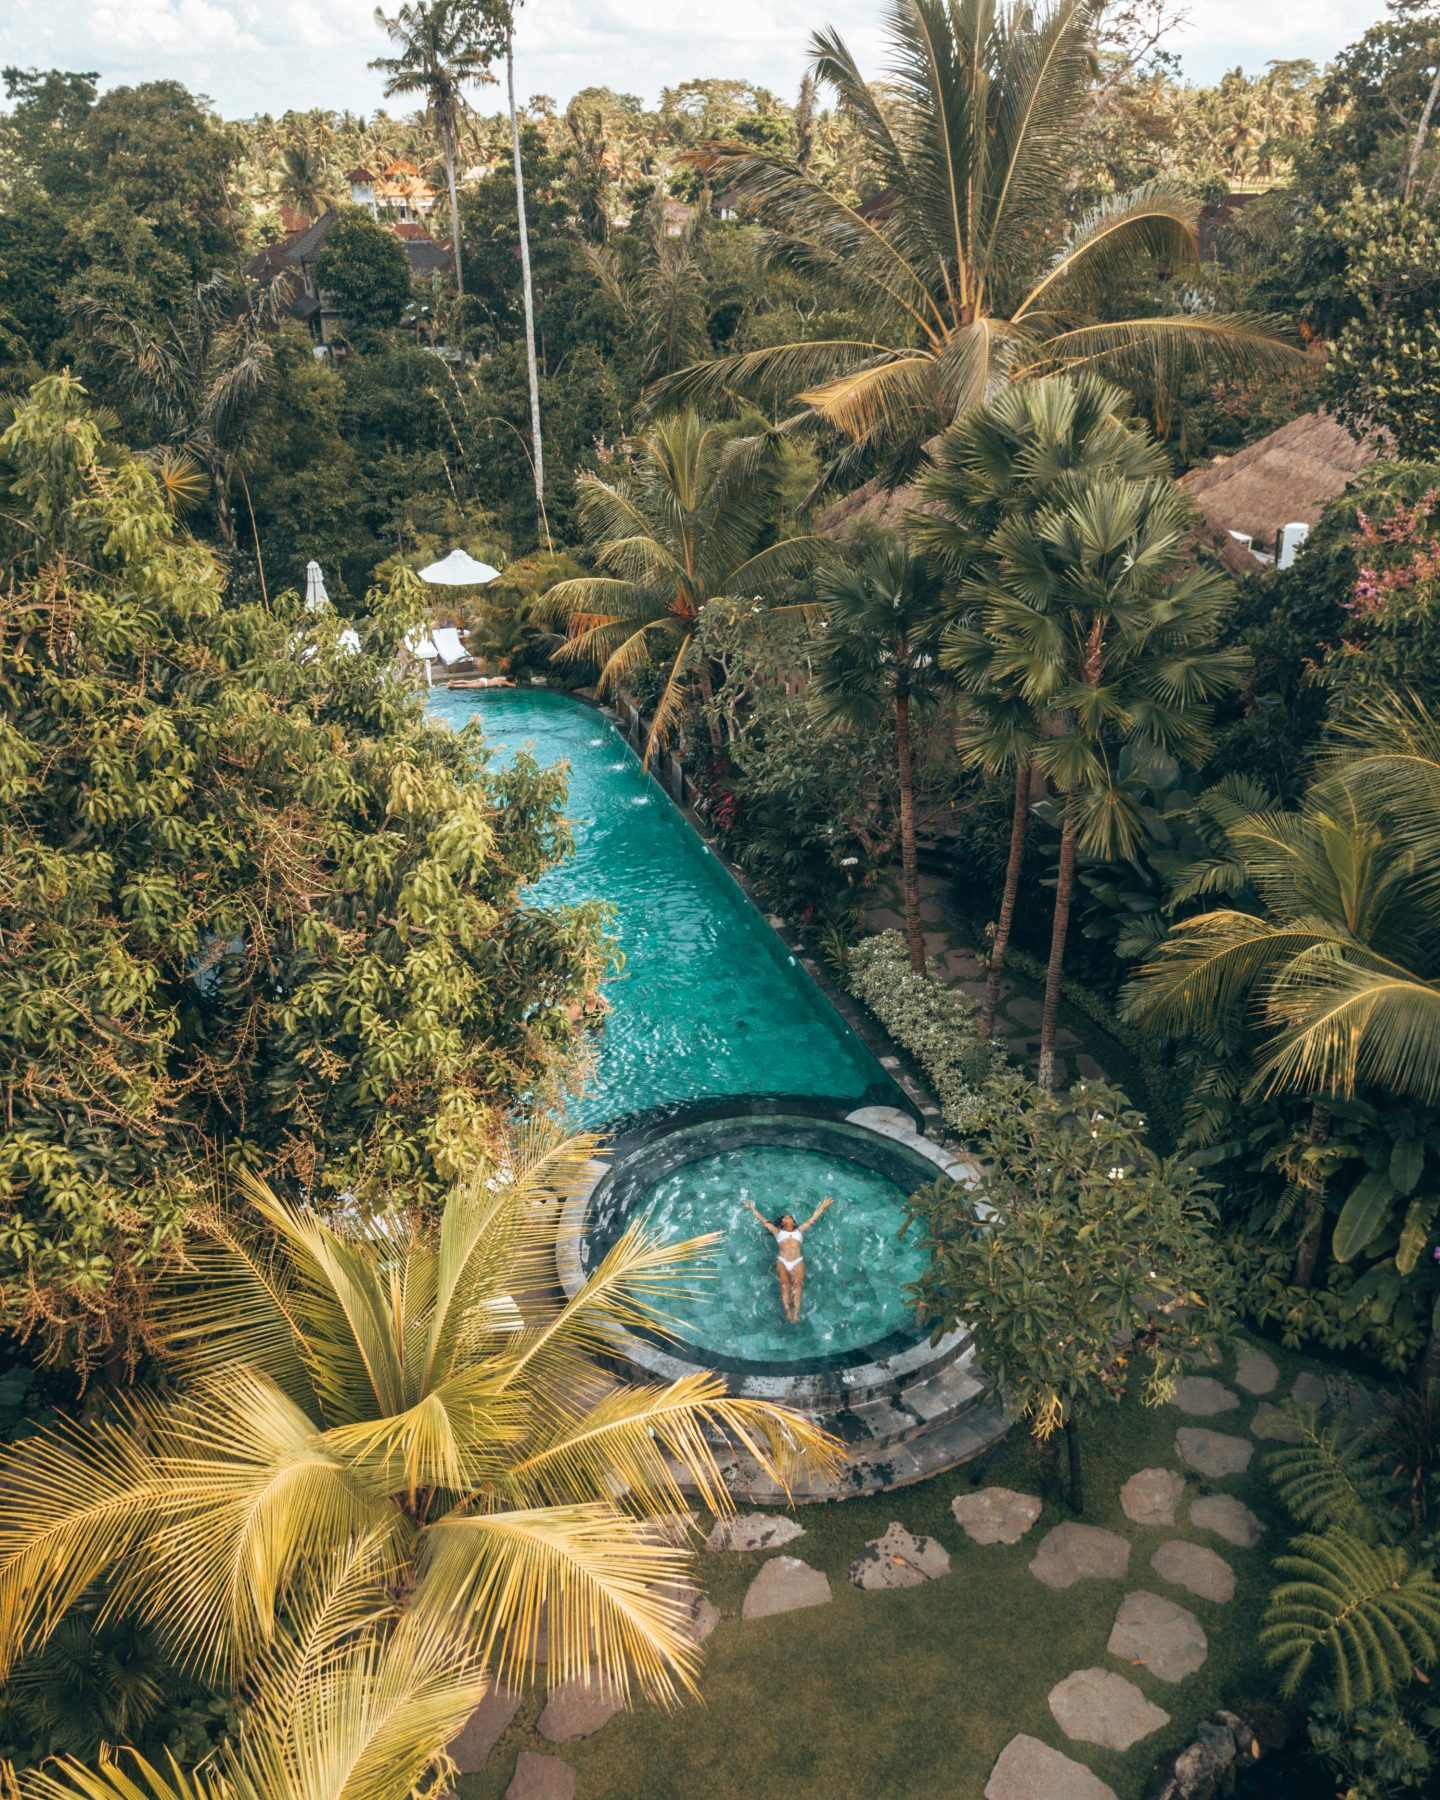 A pool at one of the best hotels in Bali